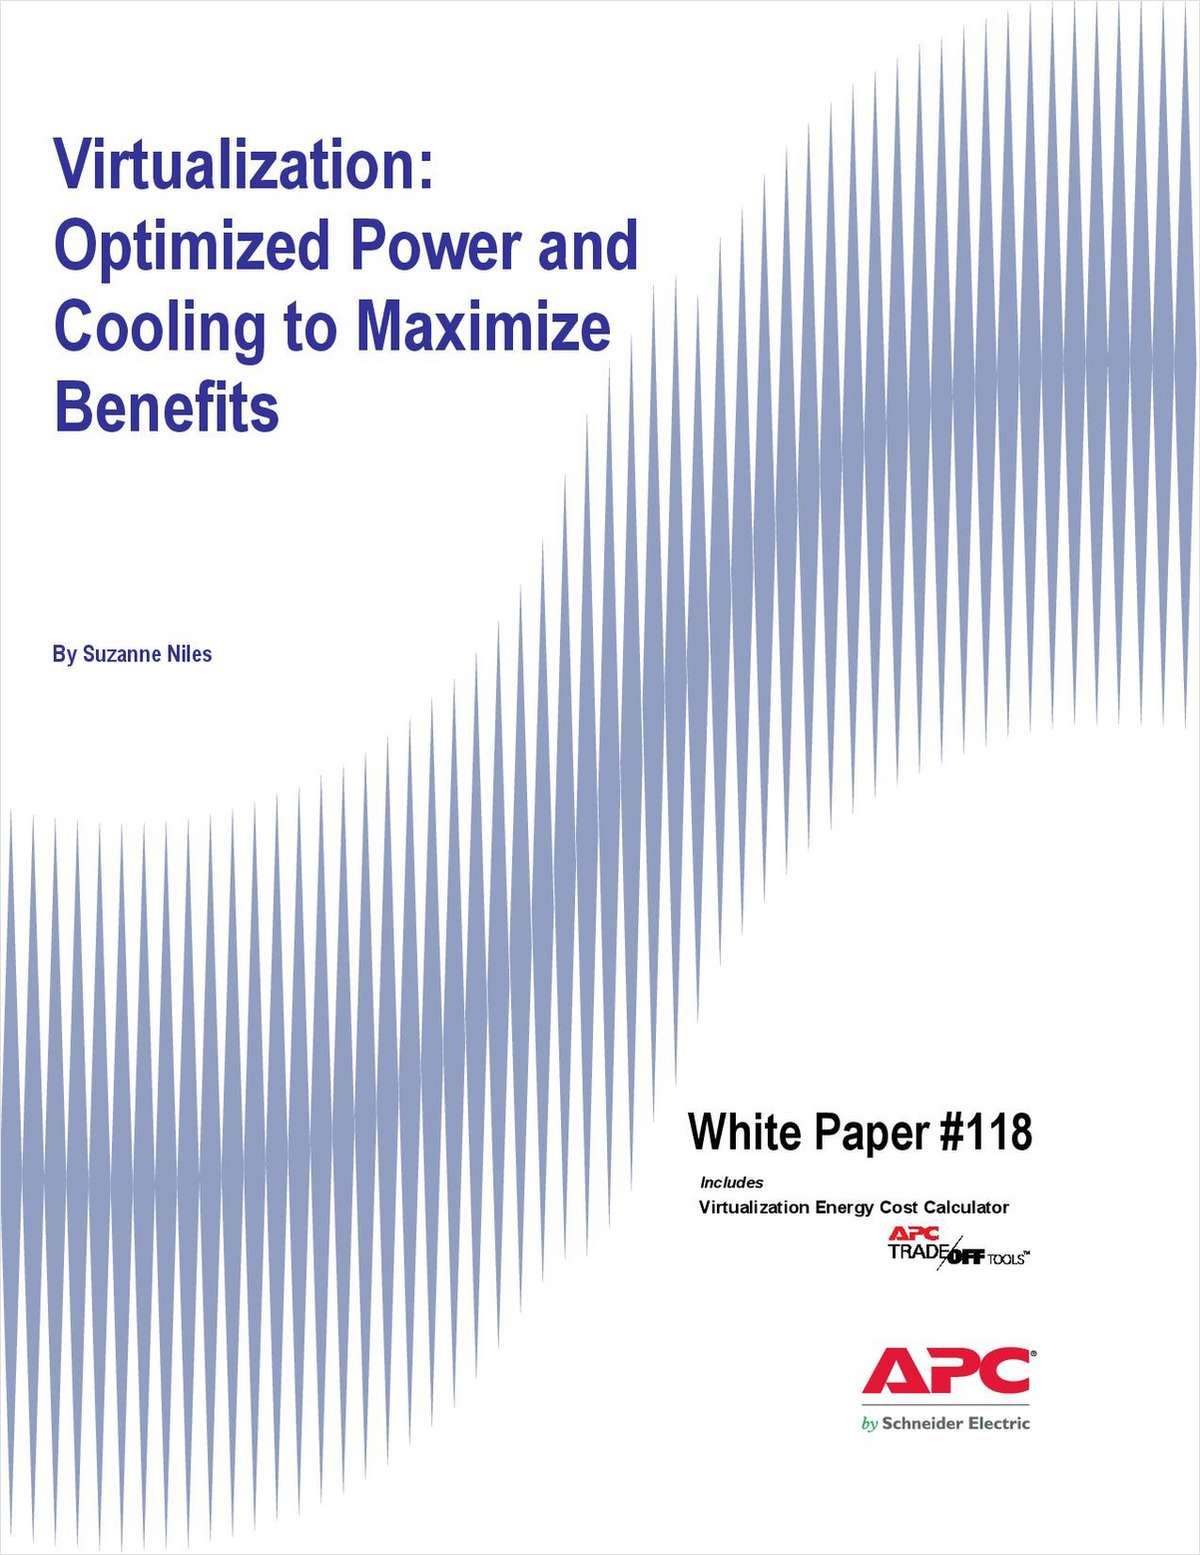 Virtualization: Optimized Power and Cooling to Maximize Benefits